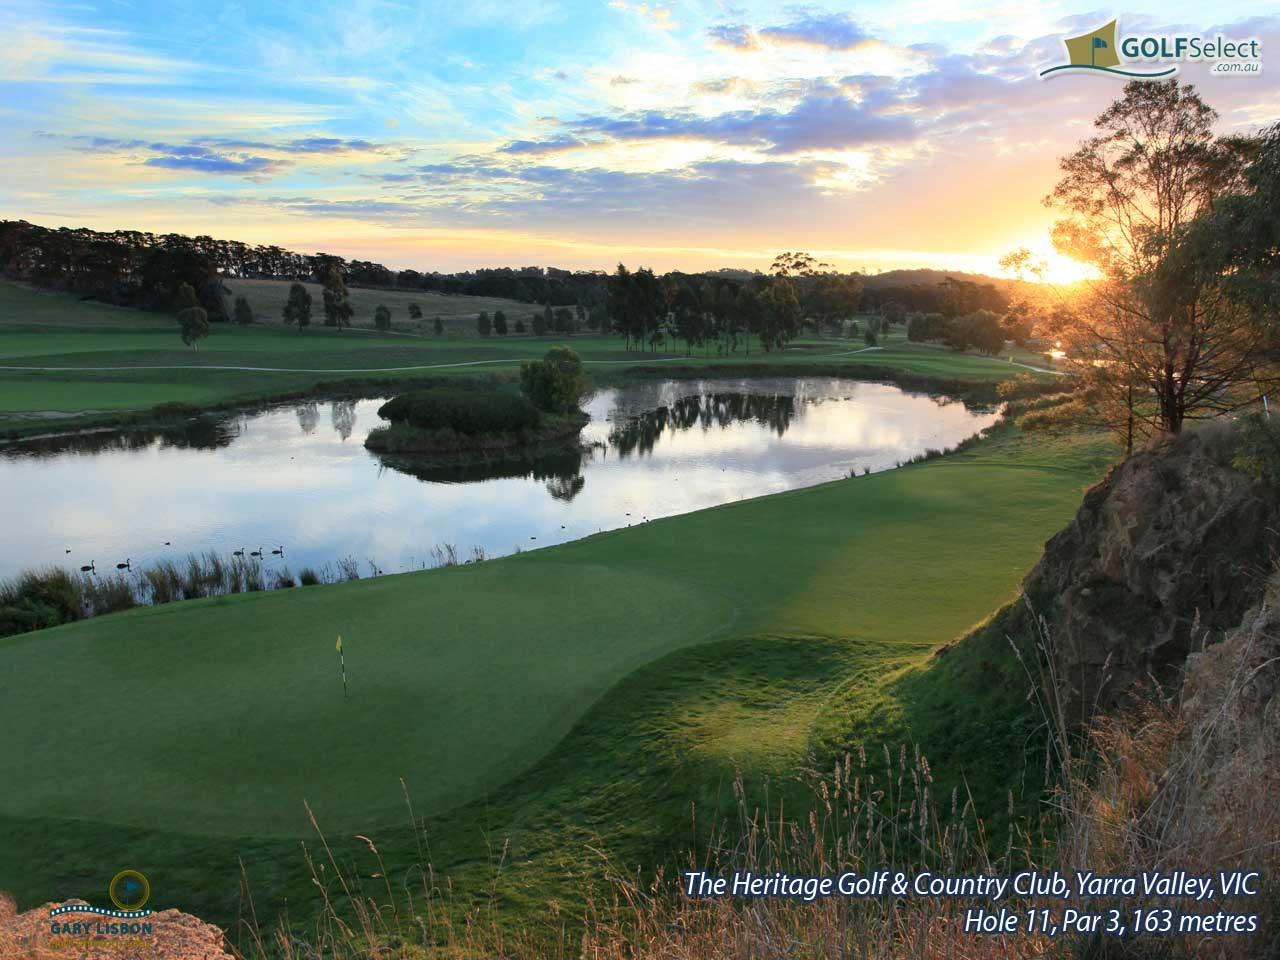 The Heritage Golf and Country Club (St.John Course) Hole 11, Par 3, 163 metres